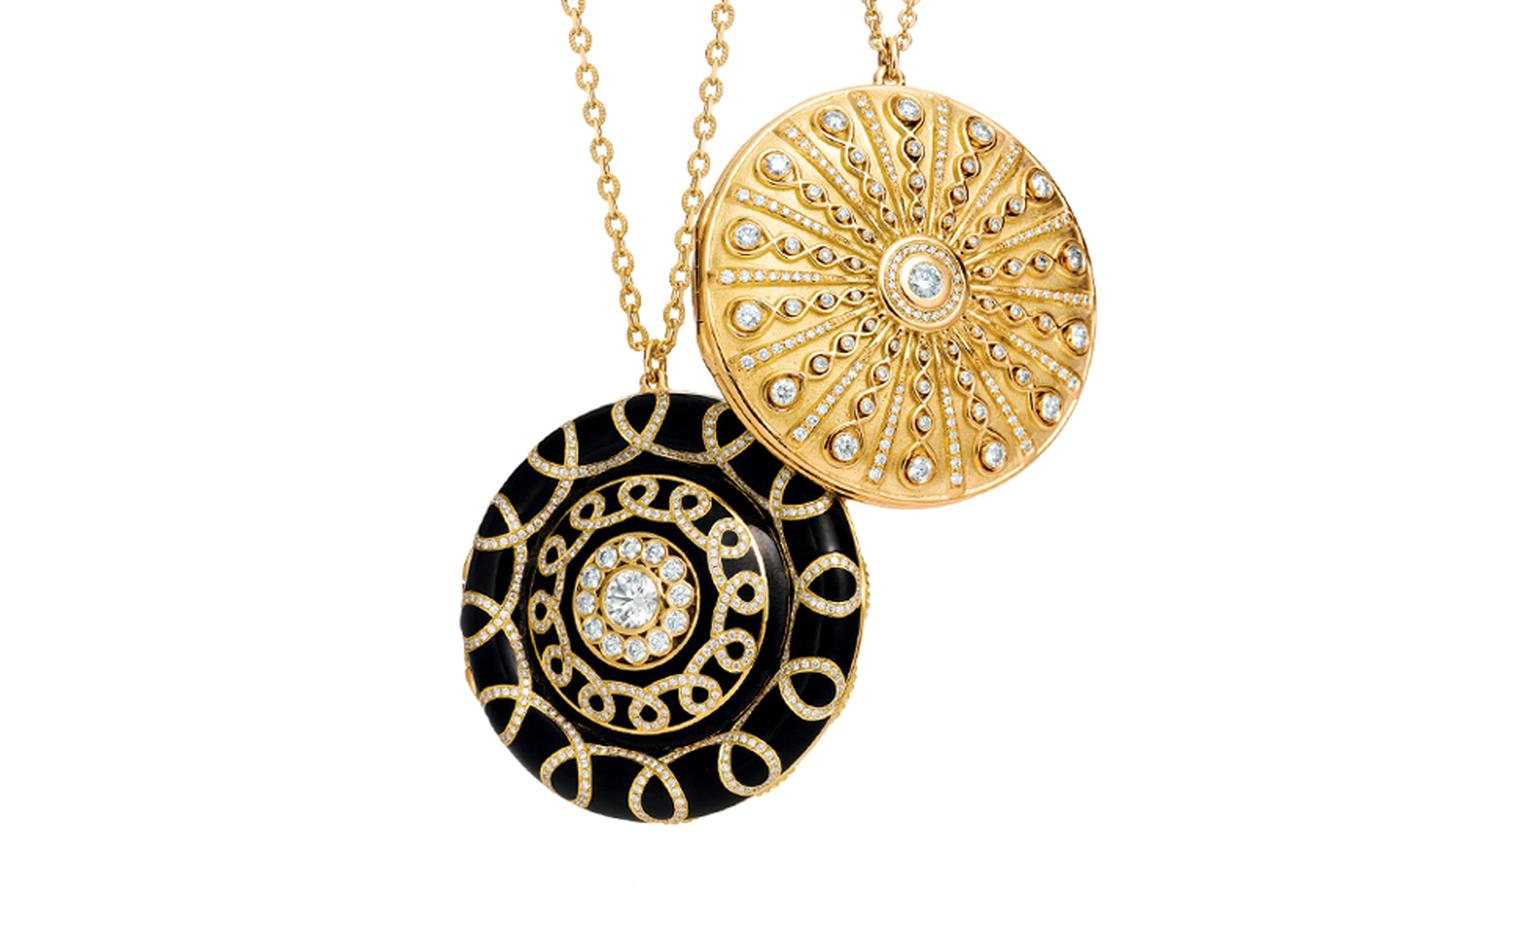 TIFFANY, Gold lockets (from left) black enamel and diamonds. Left price from $33,500, right price from $35,000